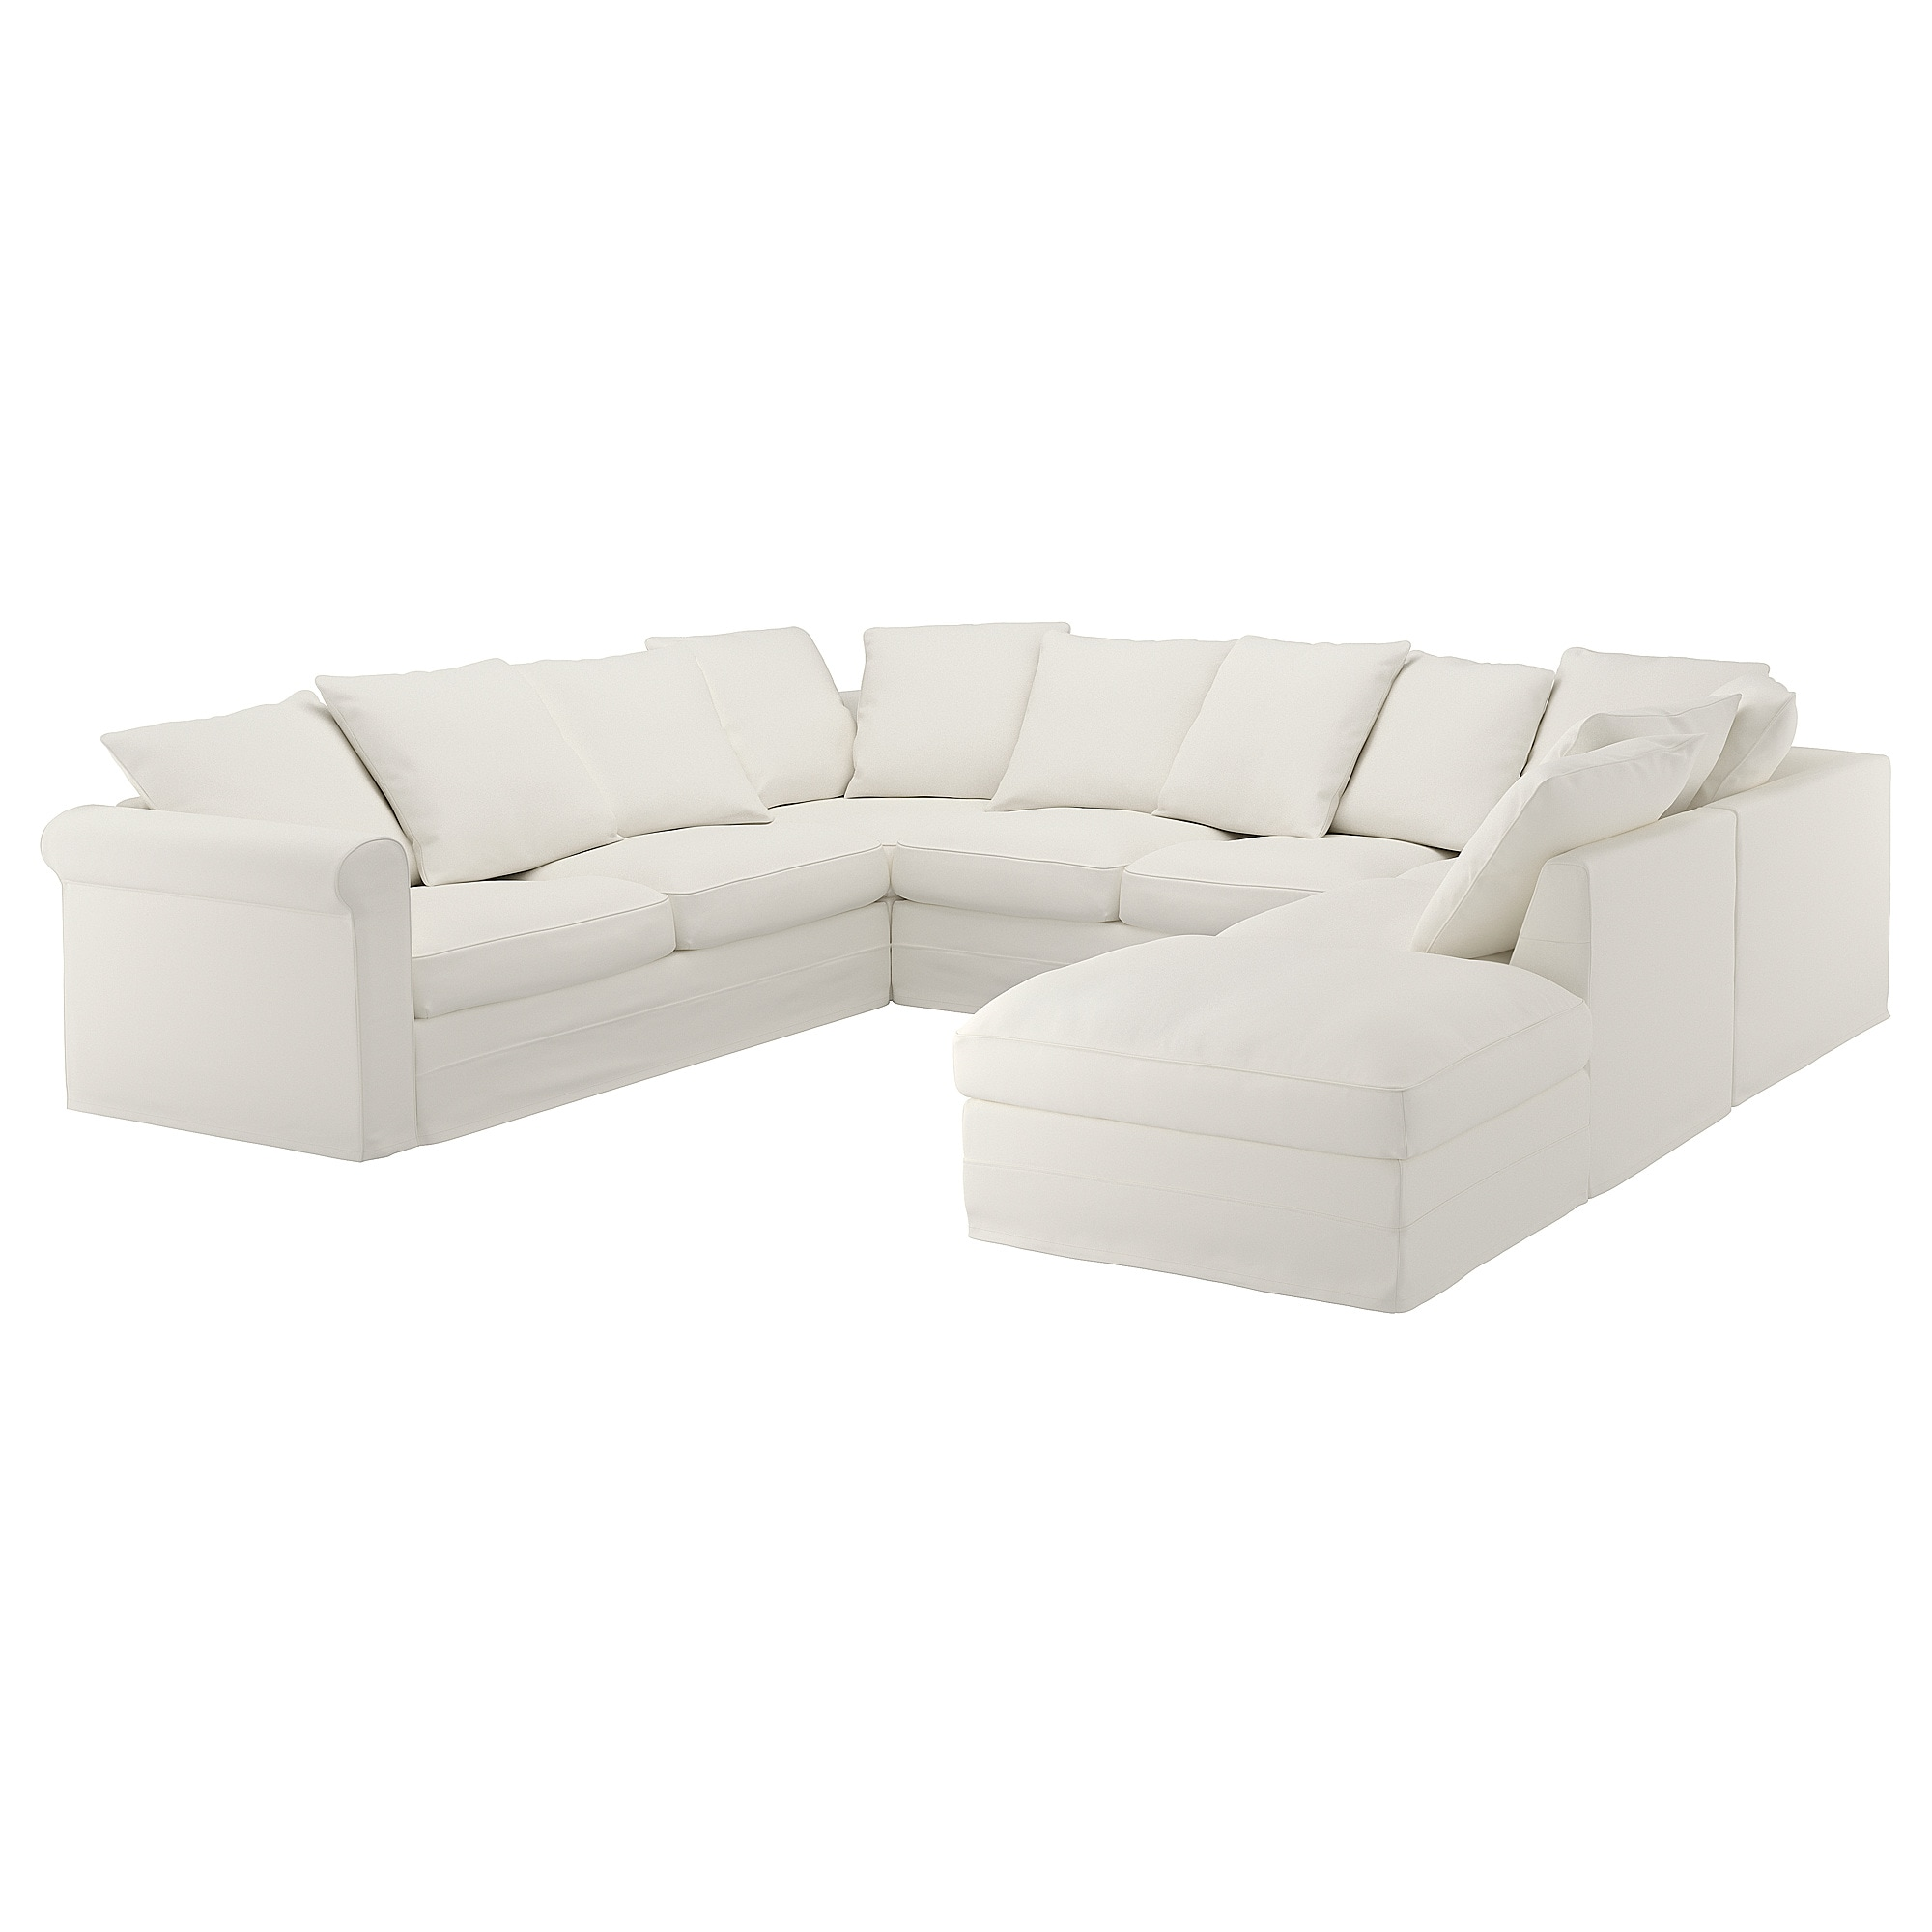 Gronlid U Shaped Sofa 6 Seat With Open End Inseros White Ikea